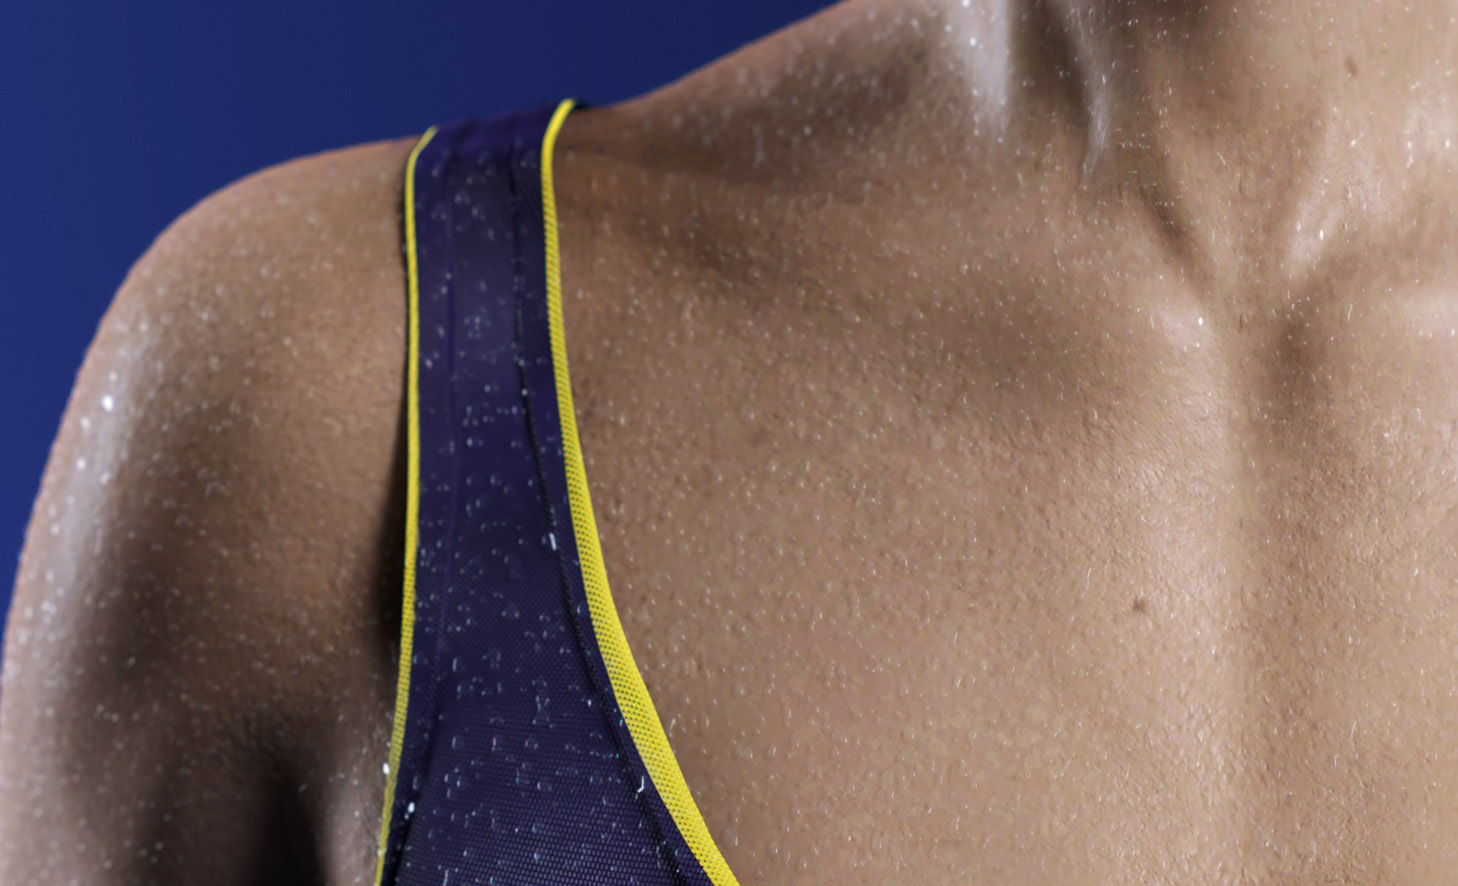 swimmer_portrait_close_up_body.jpg